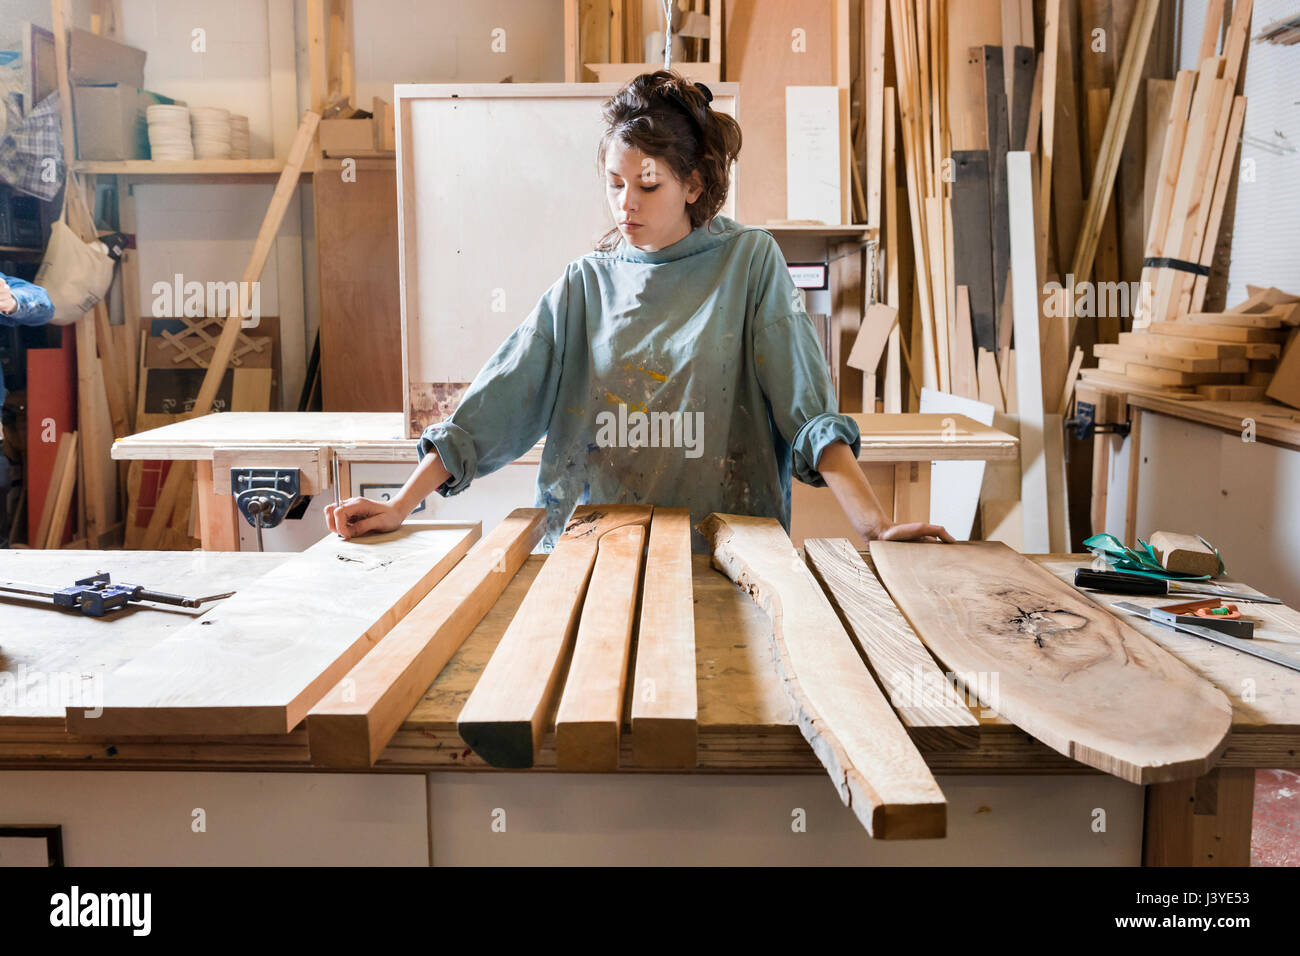 Young woman choosing wood from a selection in a workshop - Stock Image